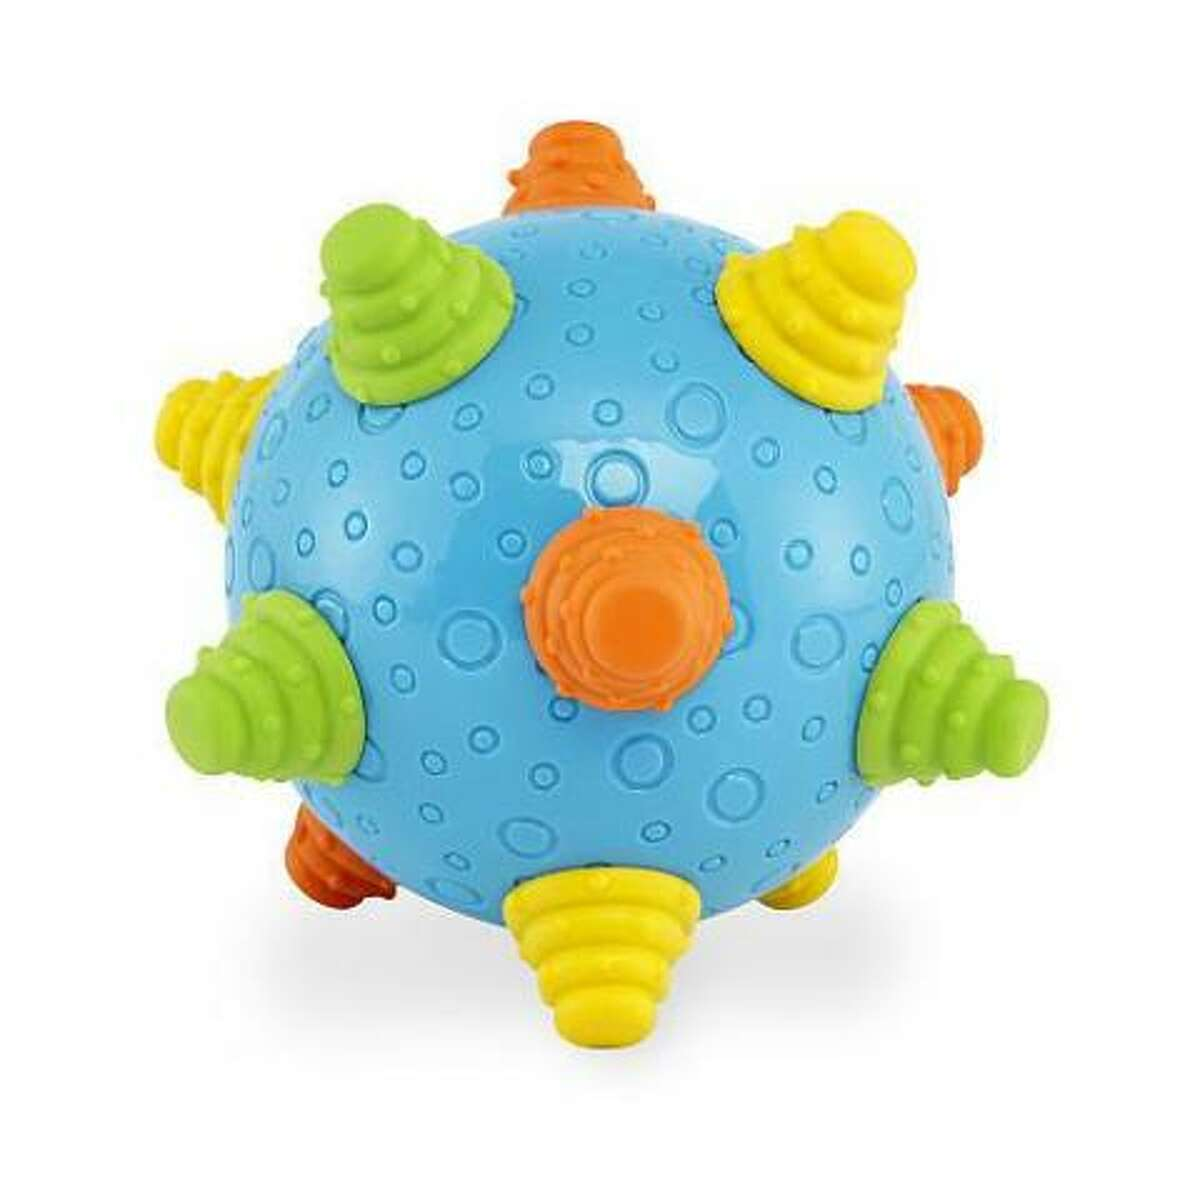 Toys R Us is recalling 29,700 Bruin infant wiggle ball toy's in the United States because the wiggle balls rubber knobs and plastic back can detach, posing a choking hazard to infants. Photo courtesy of the U.S. Consumer Product Safety Commission.